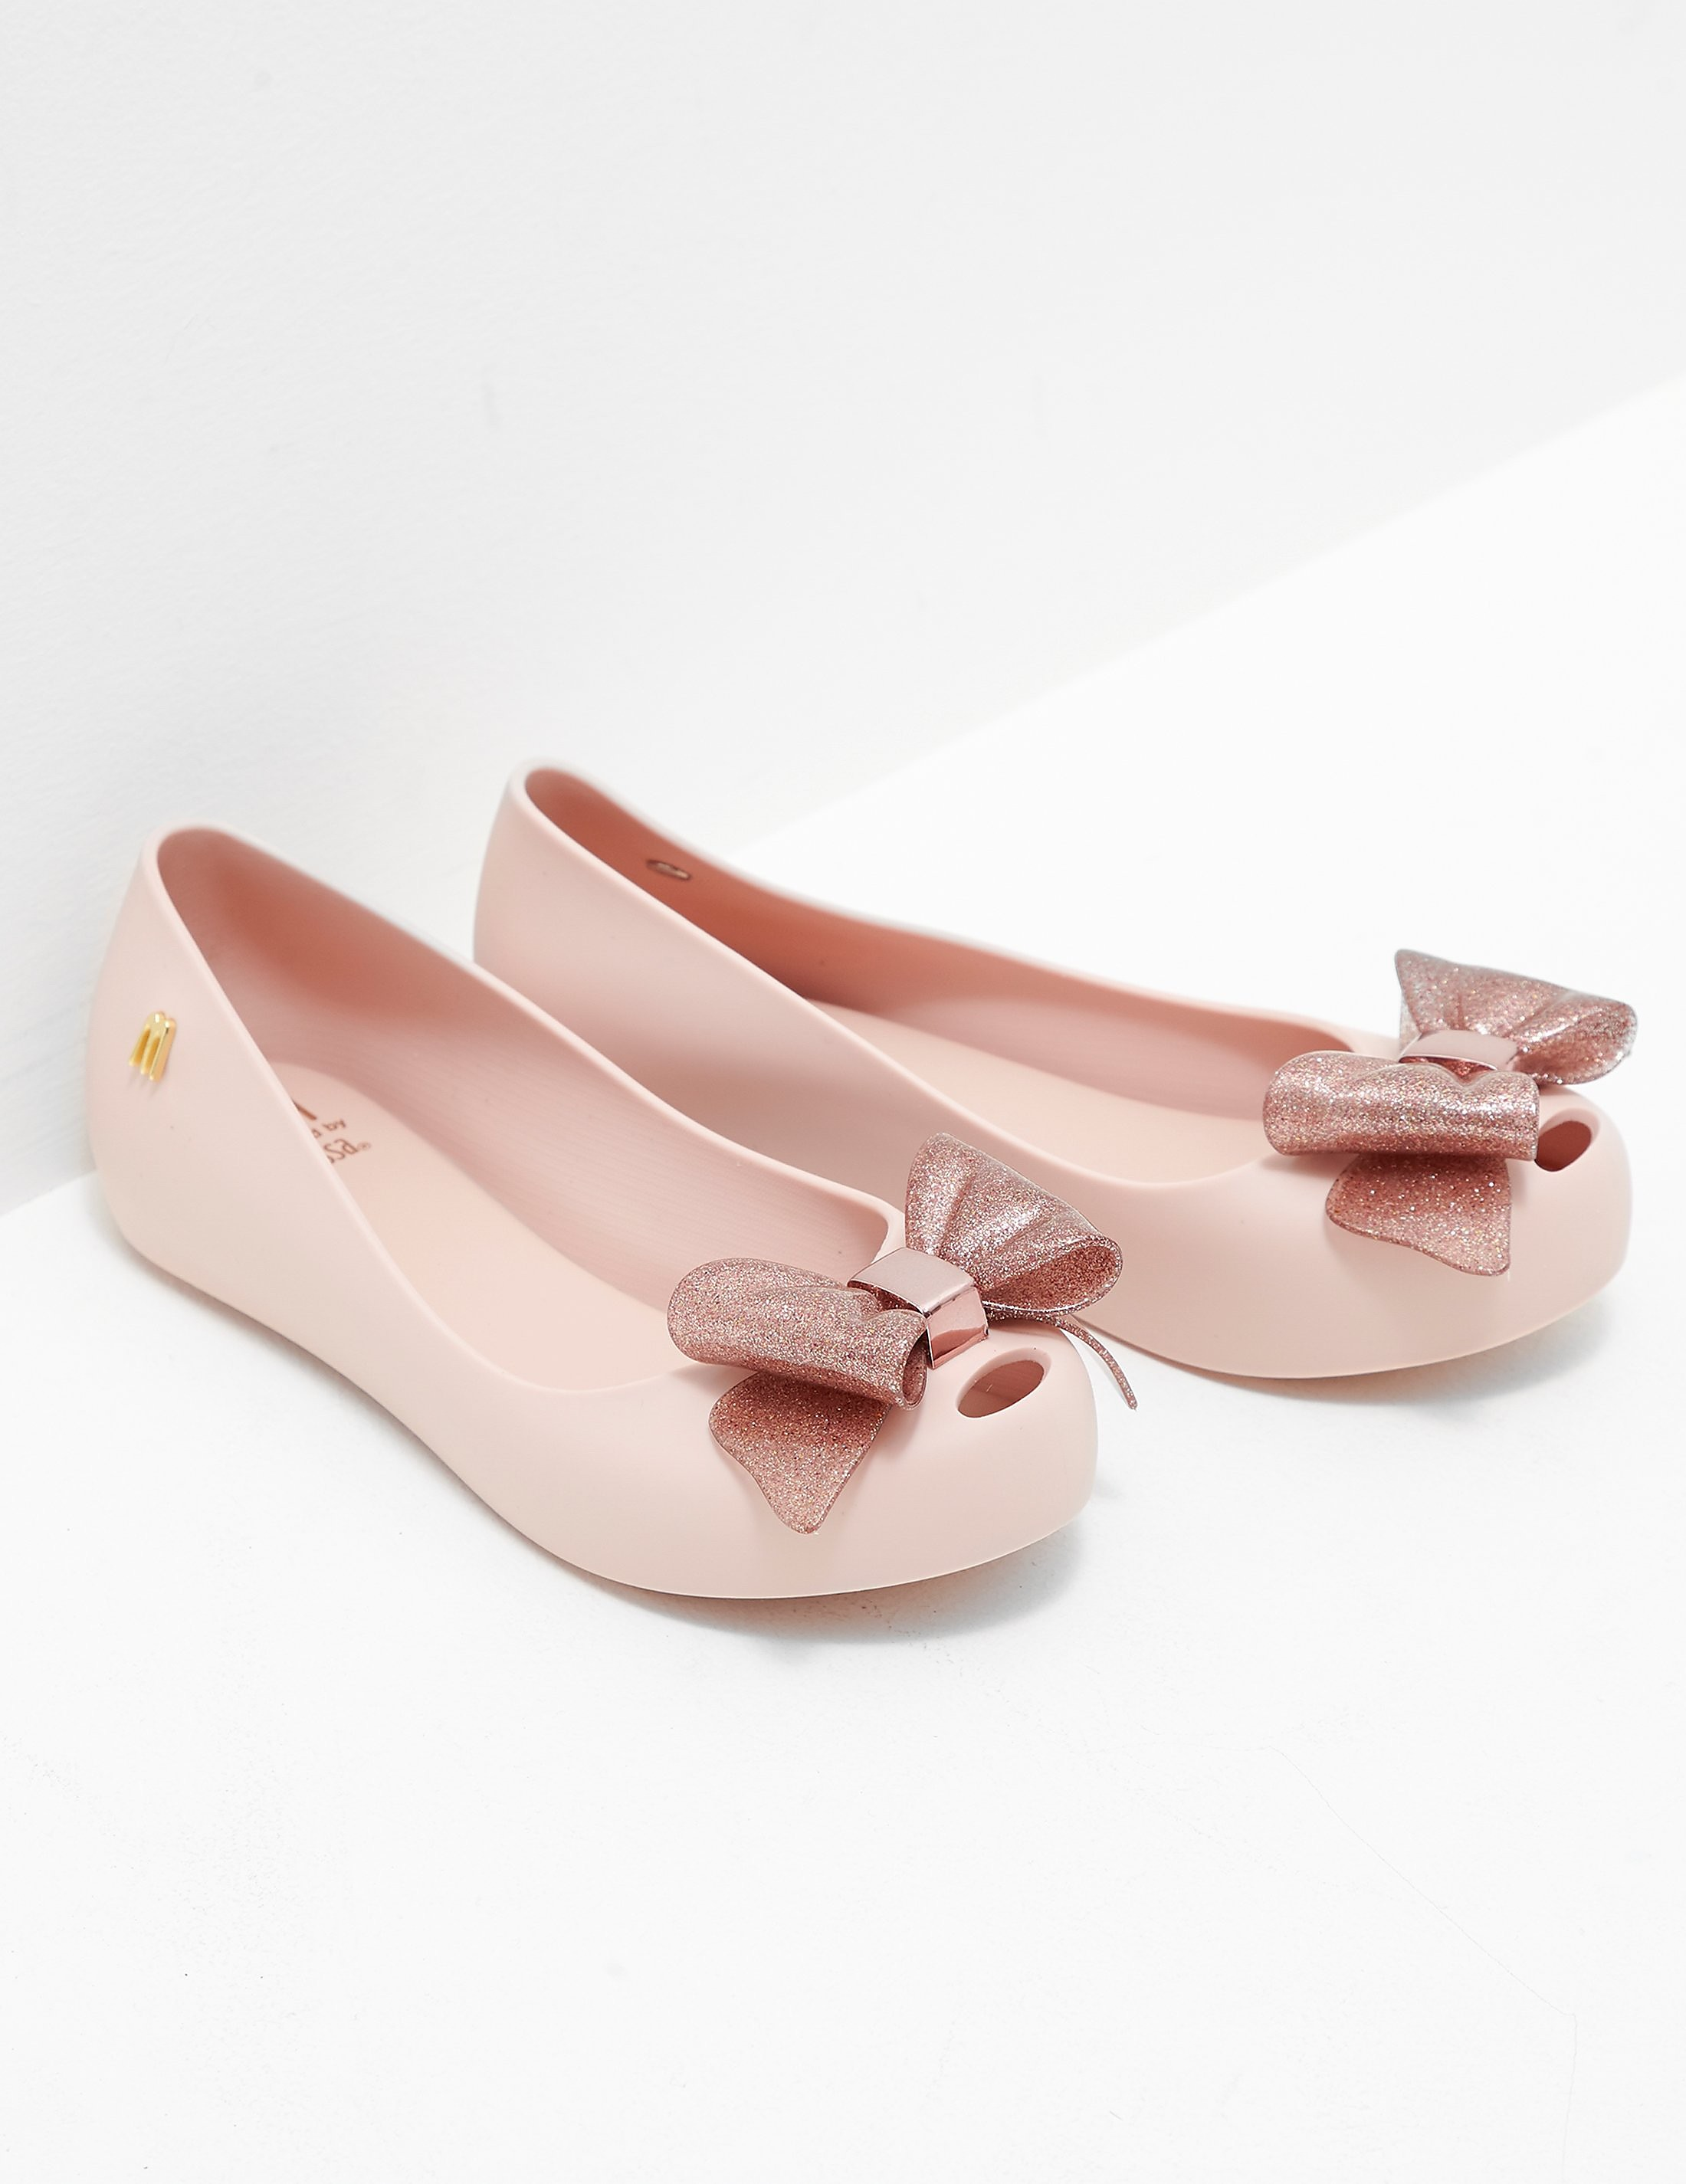 Melissa Ultragirl Sweet Bow Pumps